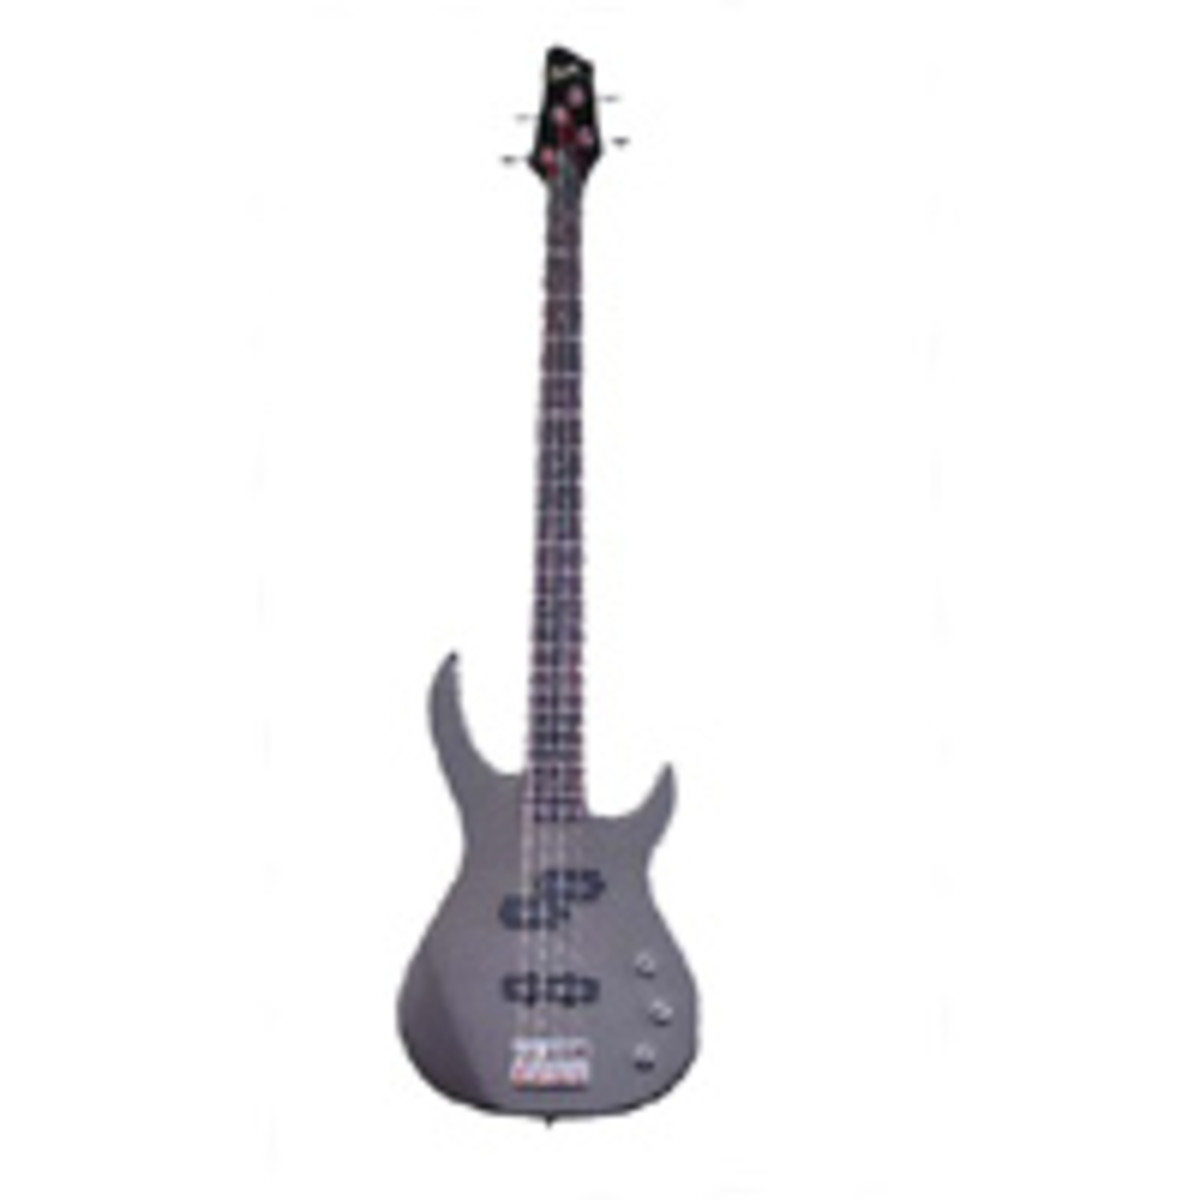 Squier MB4 Bass RW, Pewter Metallic at Gear4music.com